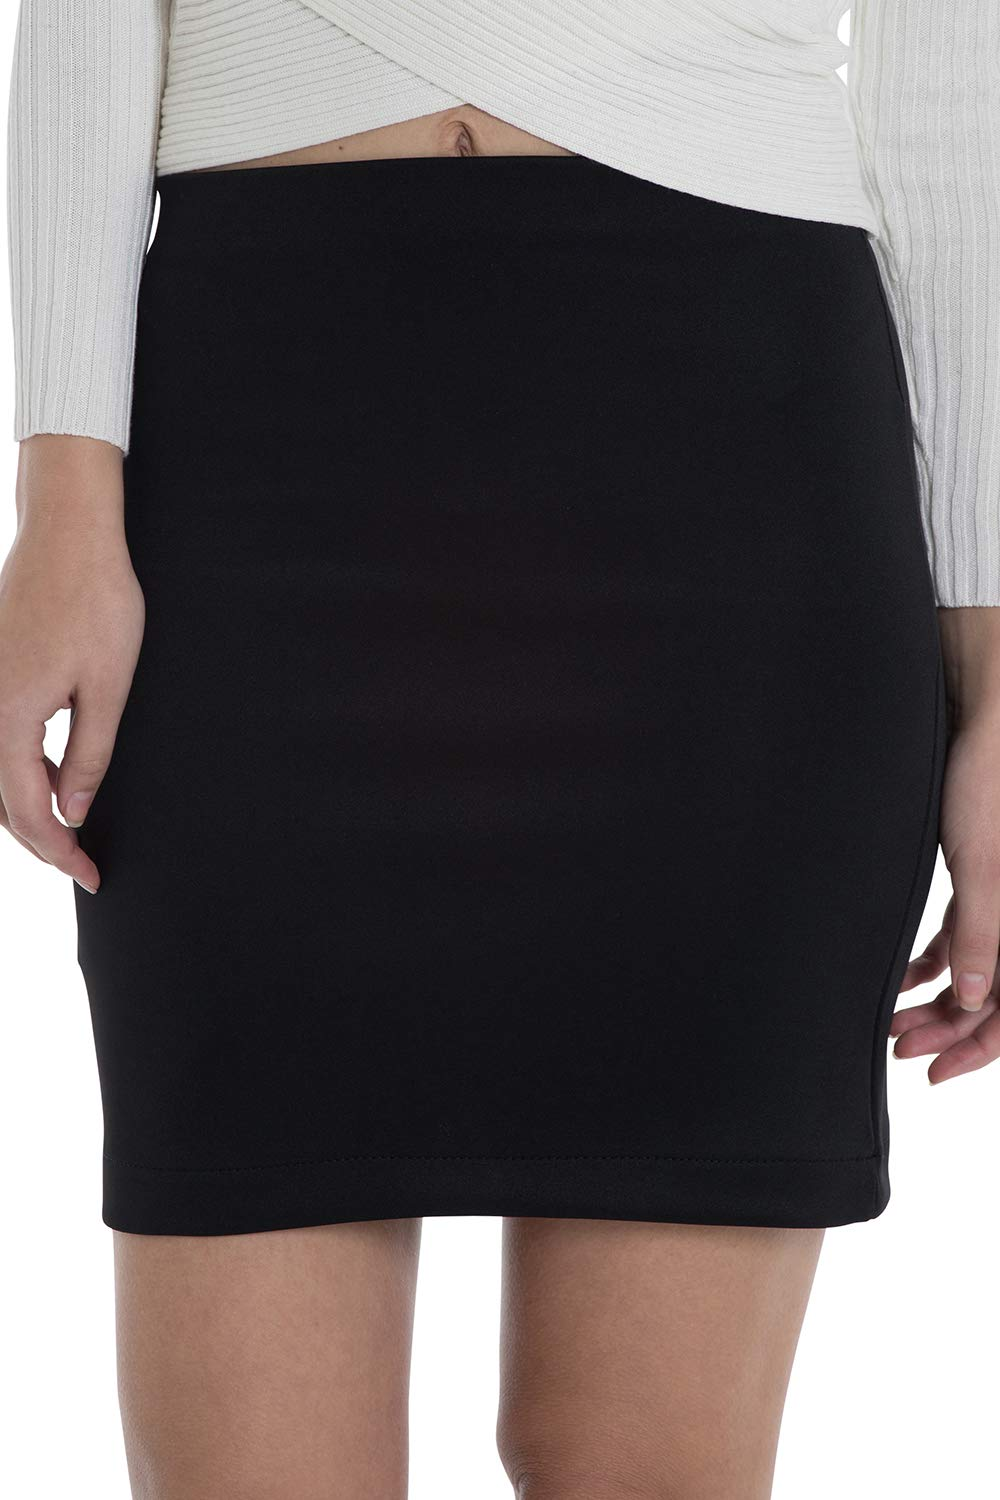 Discrepanza spericolato Whitney  Women's Mini Skirt - a Bodycon Black Pen- Buy Online in Burkina Faso at  Desertcart